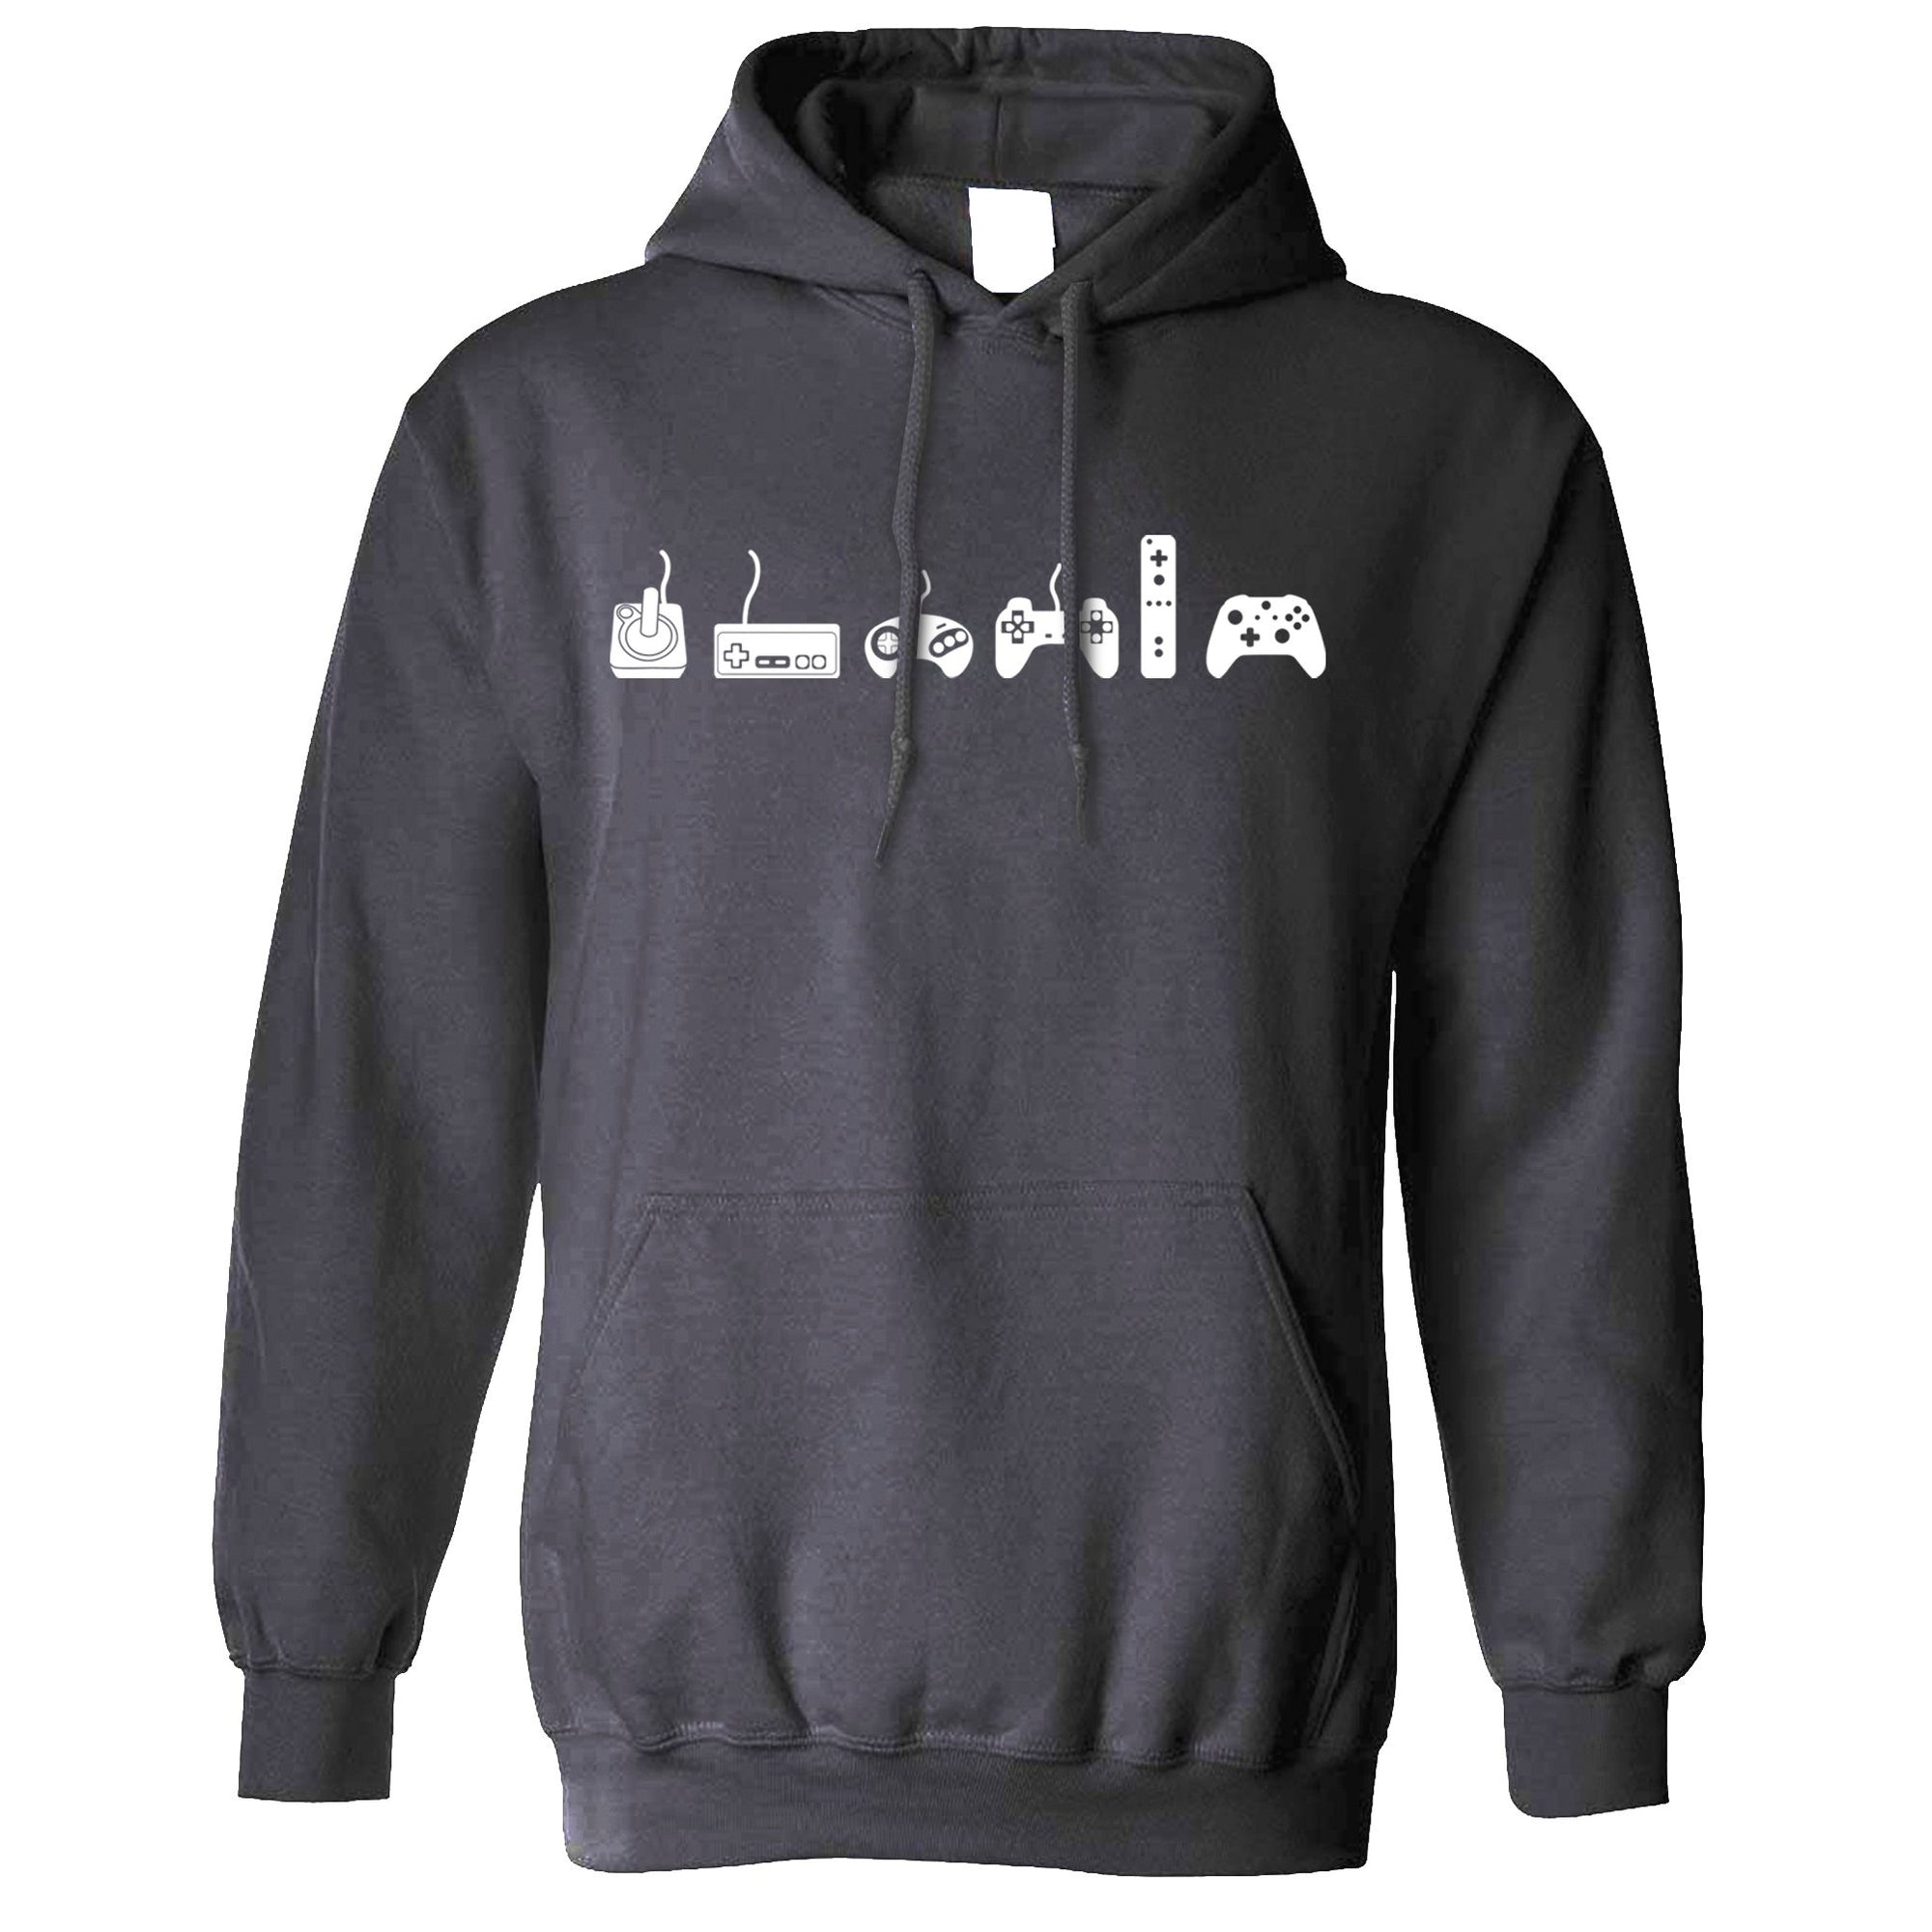 Gaming Hoodie Evolution Of A Video Game Controller Hooded Jumper